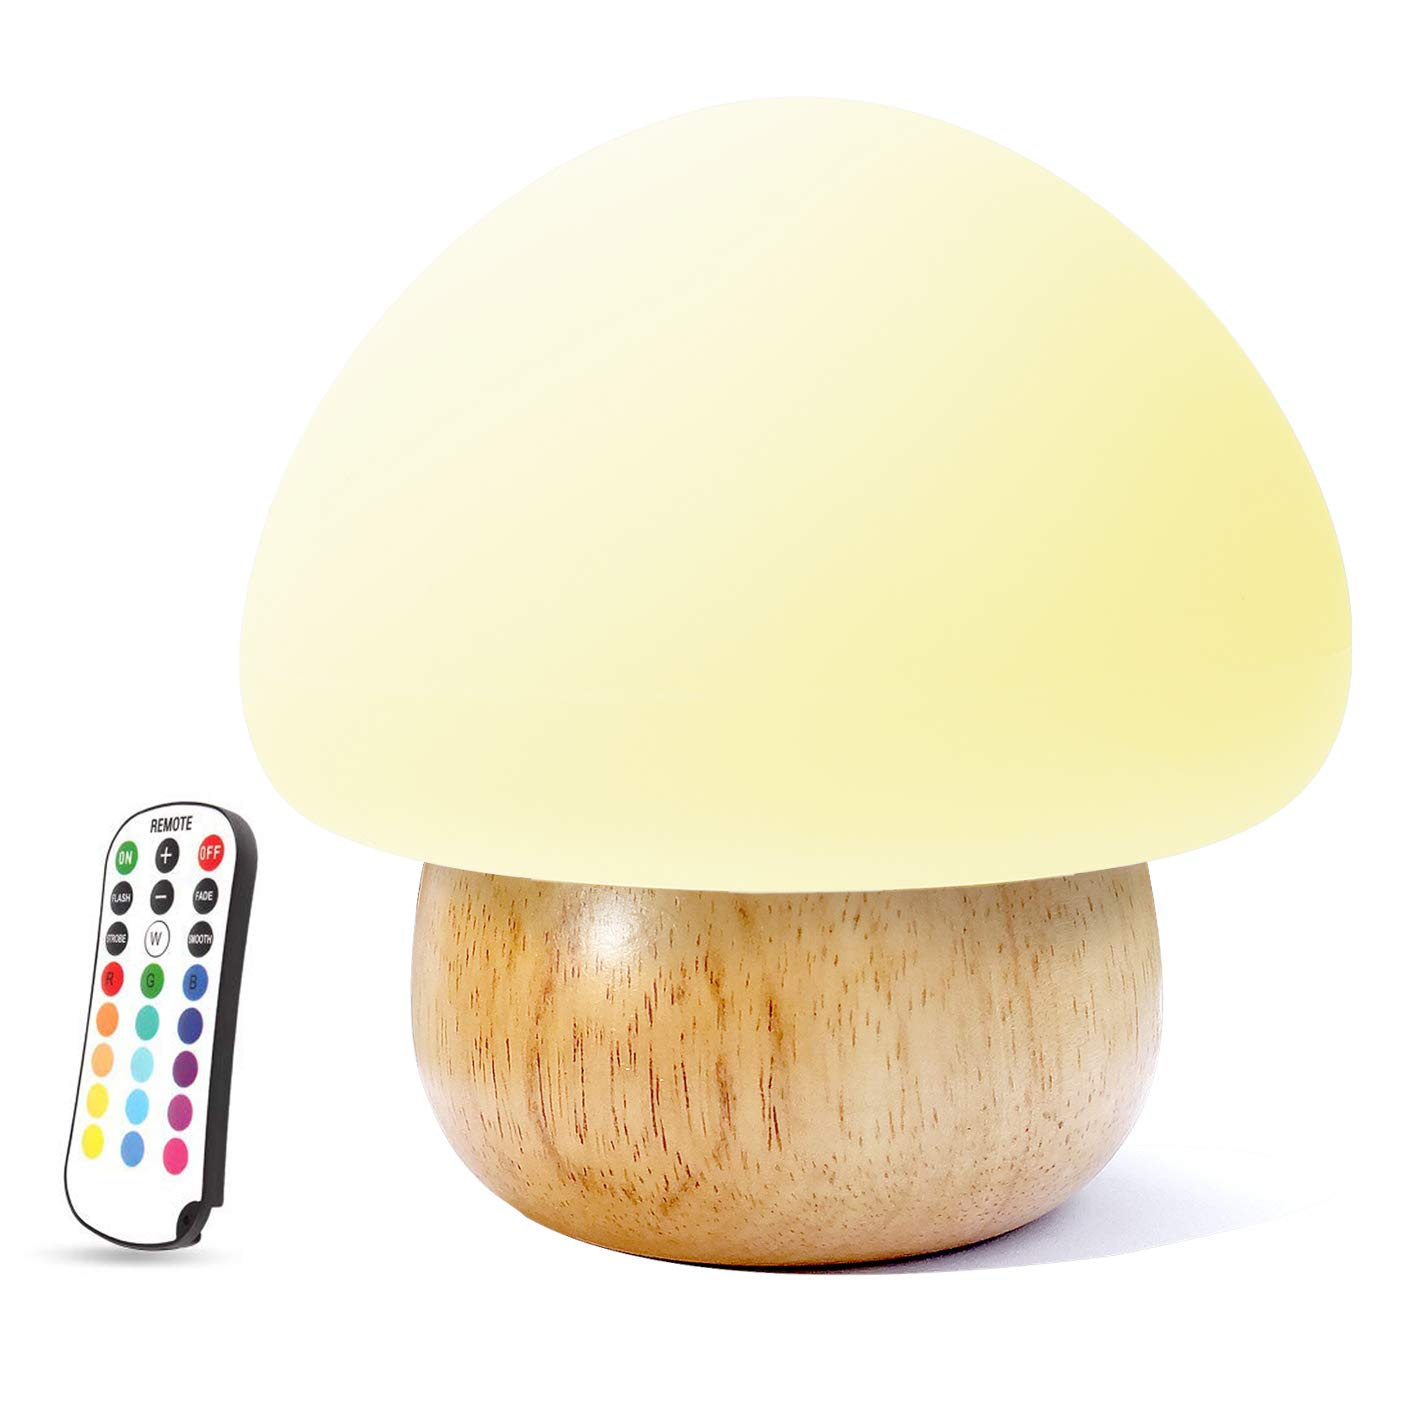 Night Lights for Kids, ACELONE Baby LED Mushroom Night Lamp, Soft Silicone Lampshape, 100% Wood, 4 Light Modes and 16 Color by Wireless Remote - USB Plug WL02